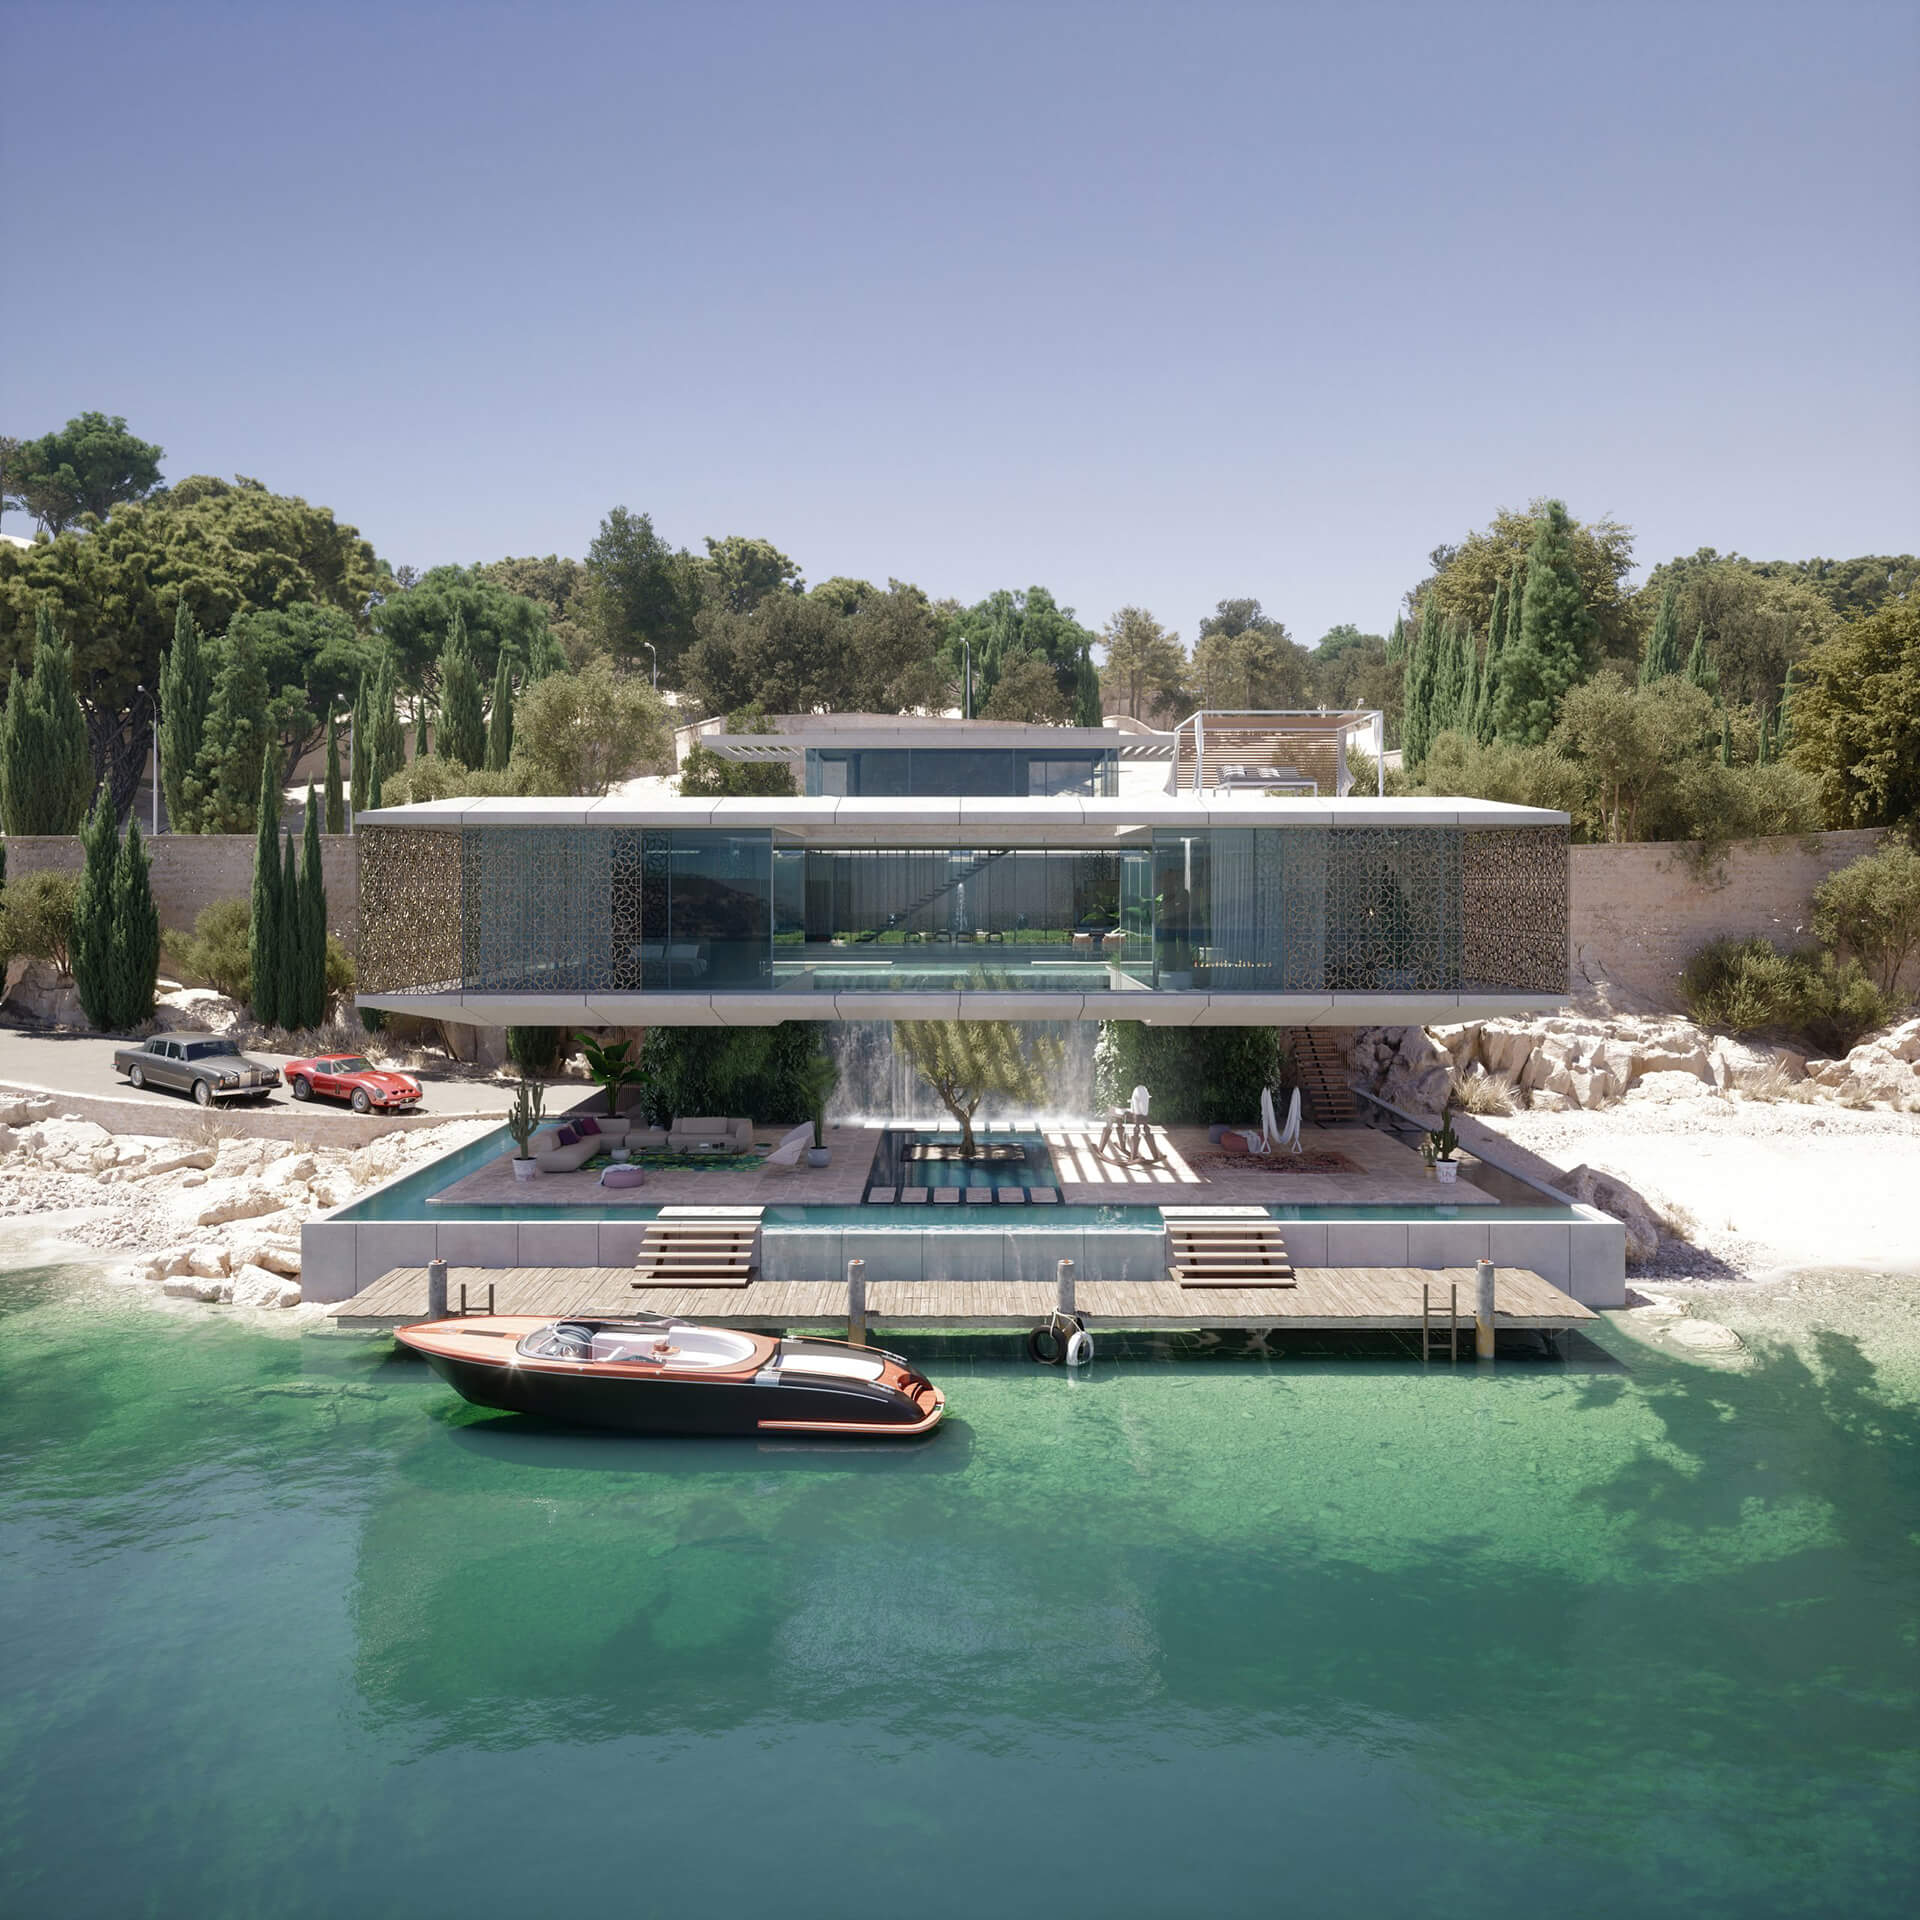 Perfect View of a Beach Villa in a Photorealistic 3D Render